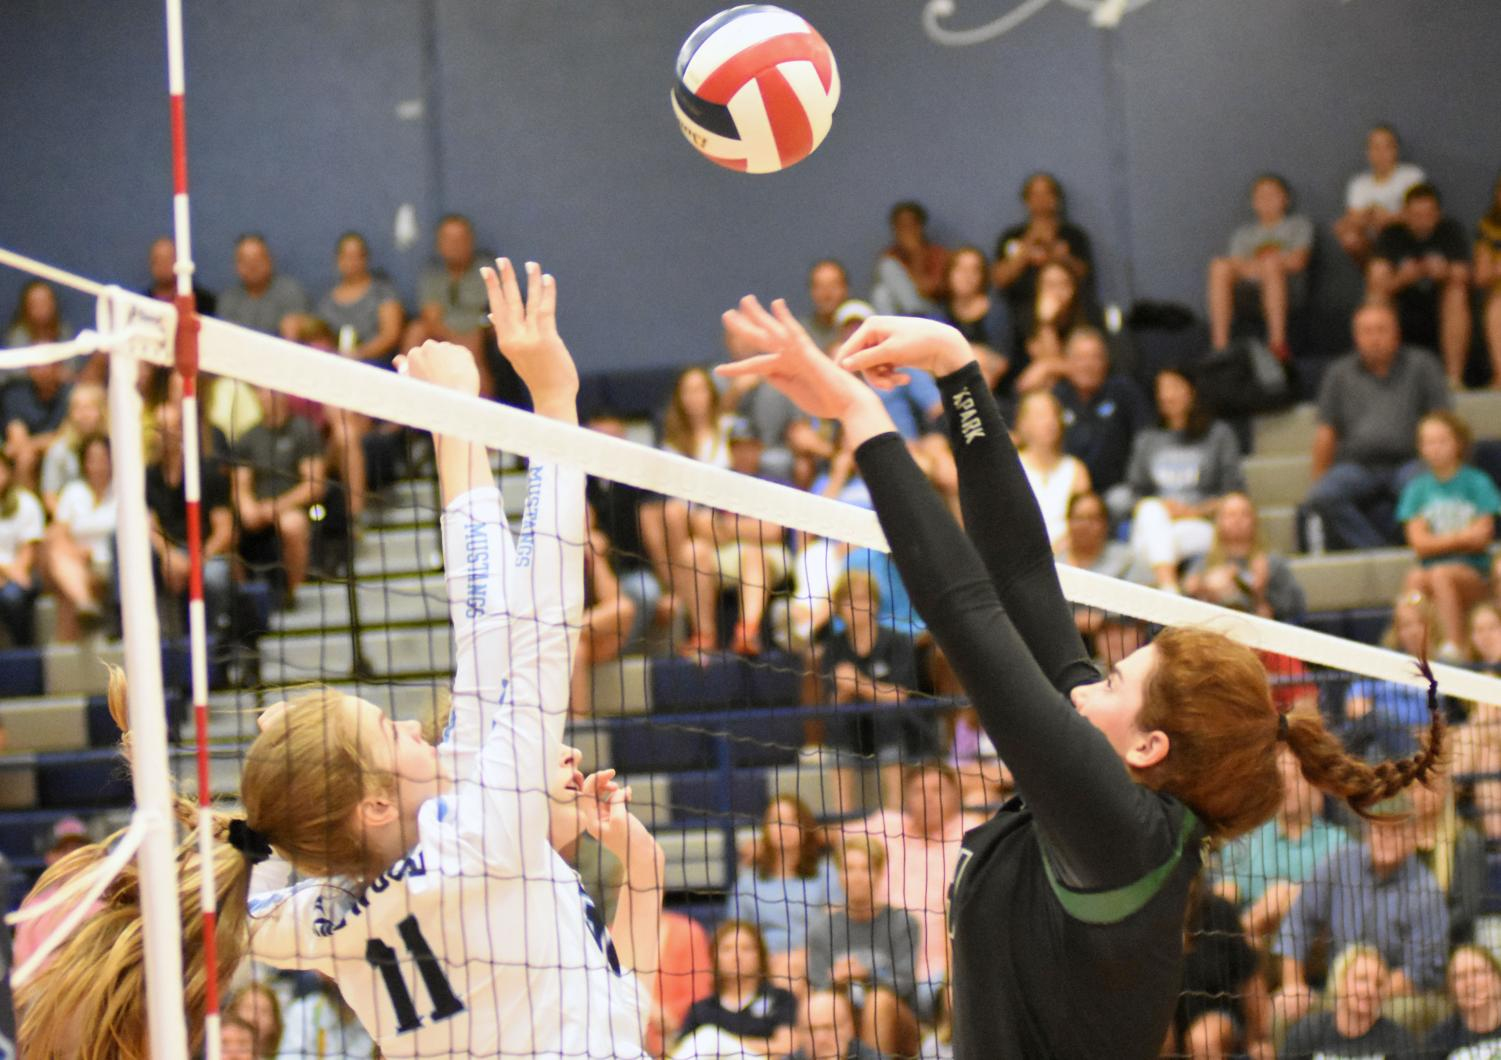 Senior LIbby Overmyer blocks the ball against Kingwood High School in a match earlier this season. Overmyer was the MVP of the state tournament last year as she helped lift the Panthers to the 5A state title.